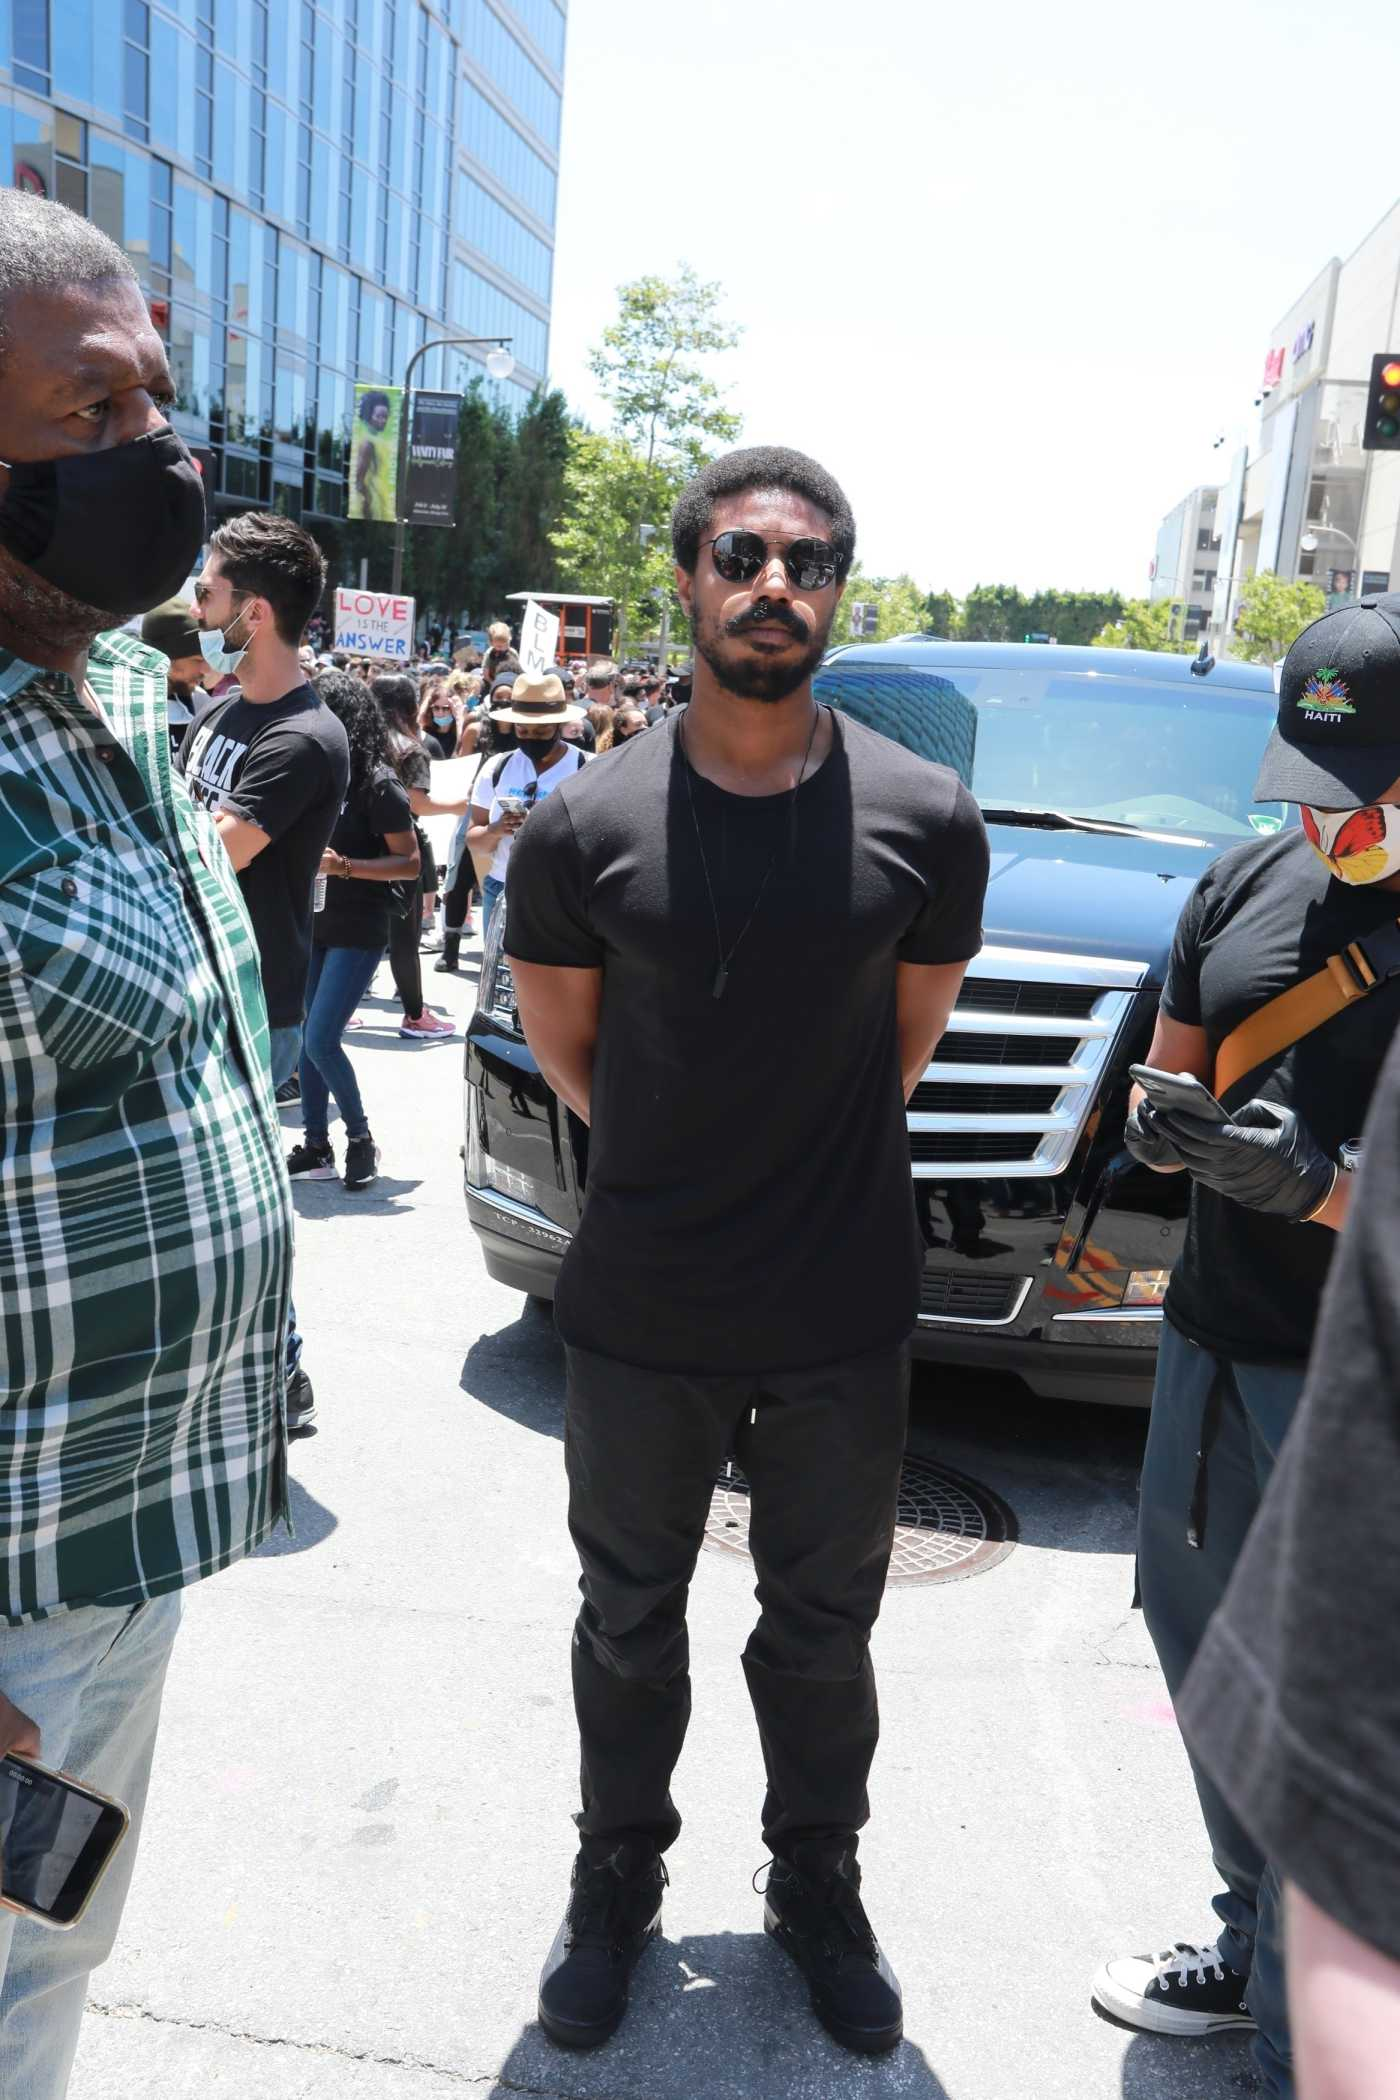 Michael B Jordan in a Black Tee Attends the Black Lives Matter Protest in Century City 06/06/2020